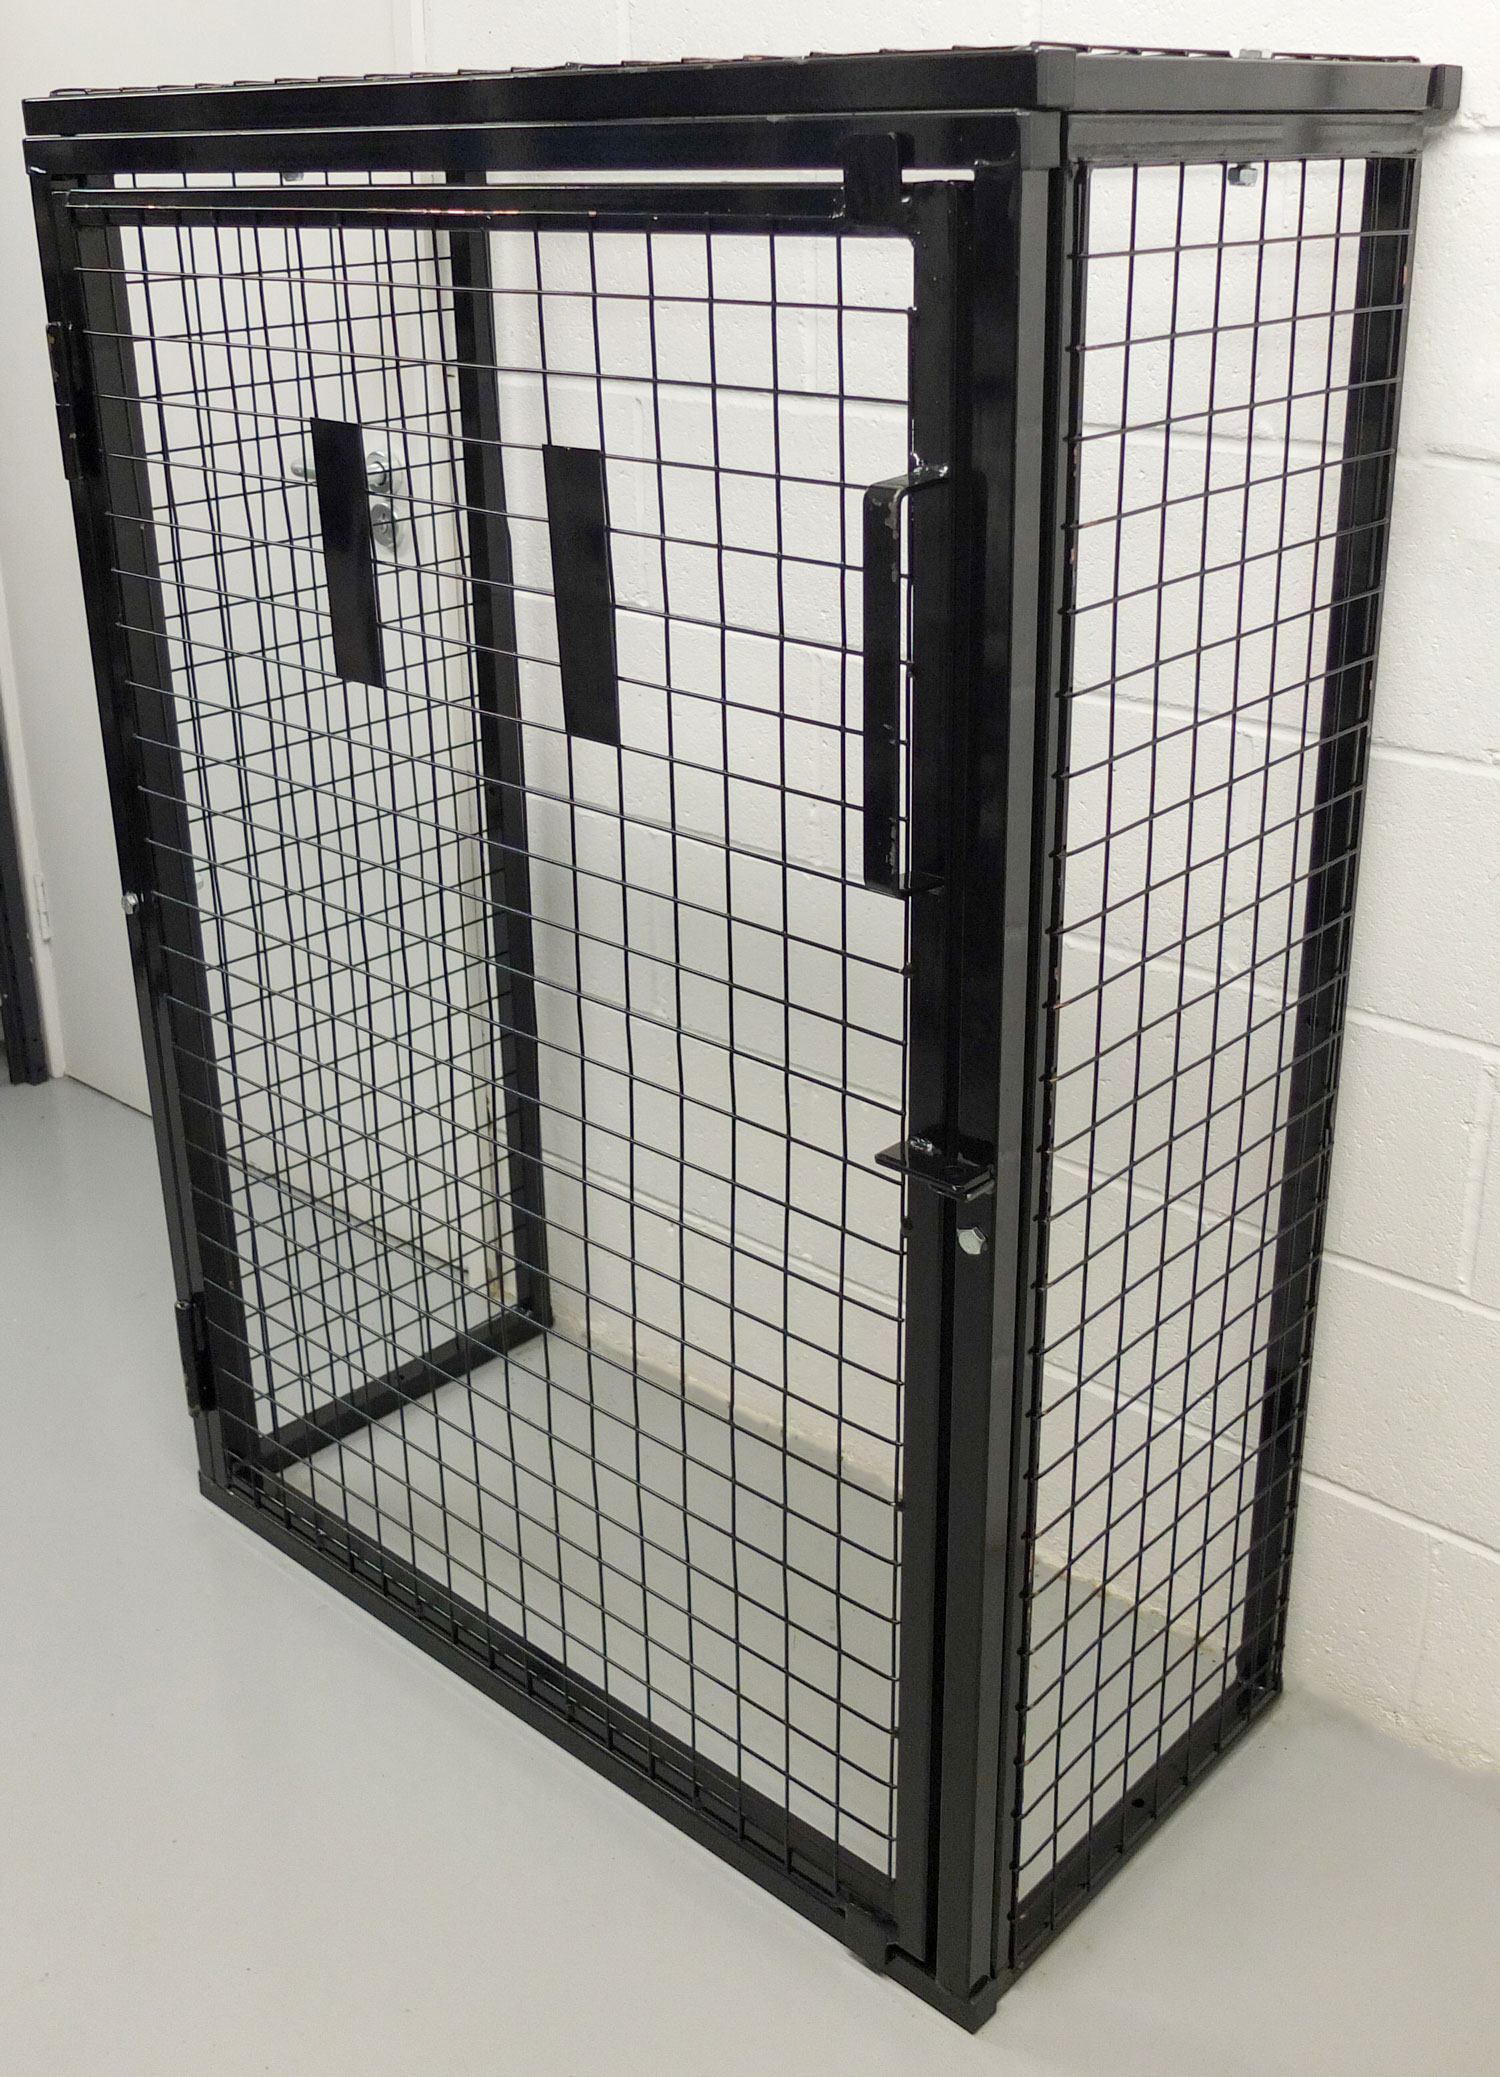 Air Conditioning Cage Security Cages Direct